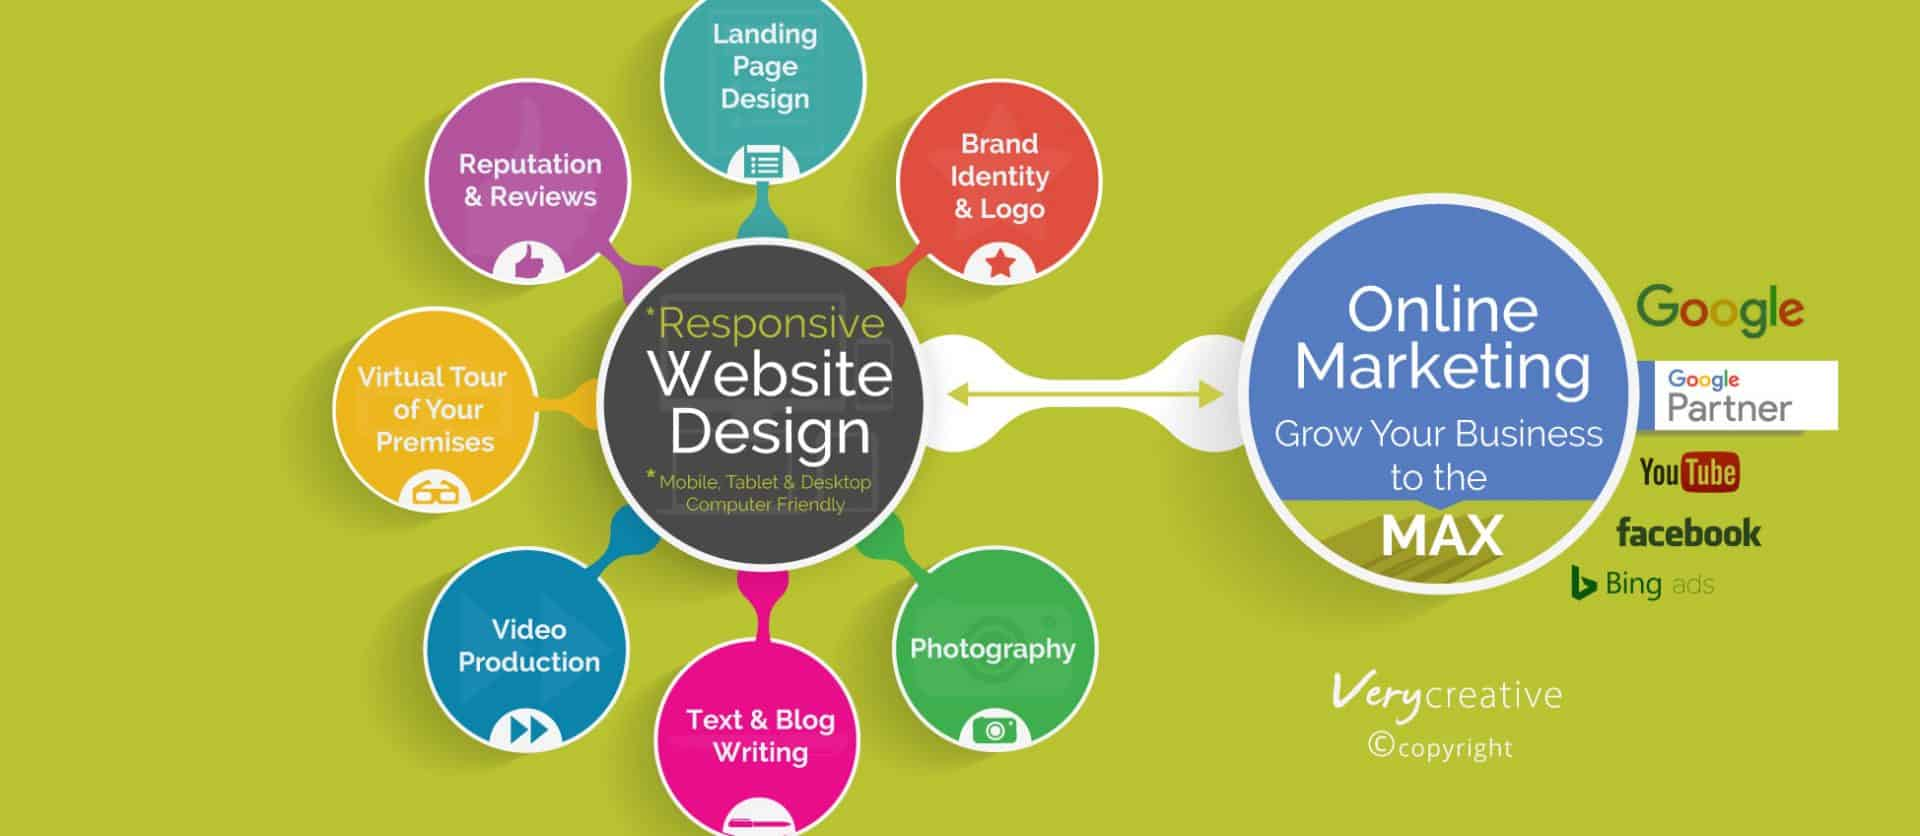 02 Home Banners Services Web Design Marketing-12